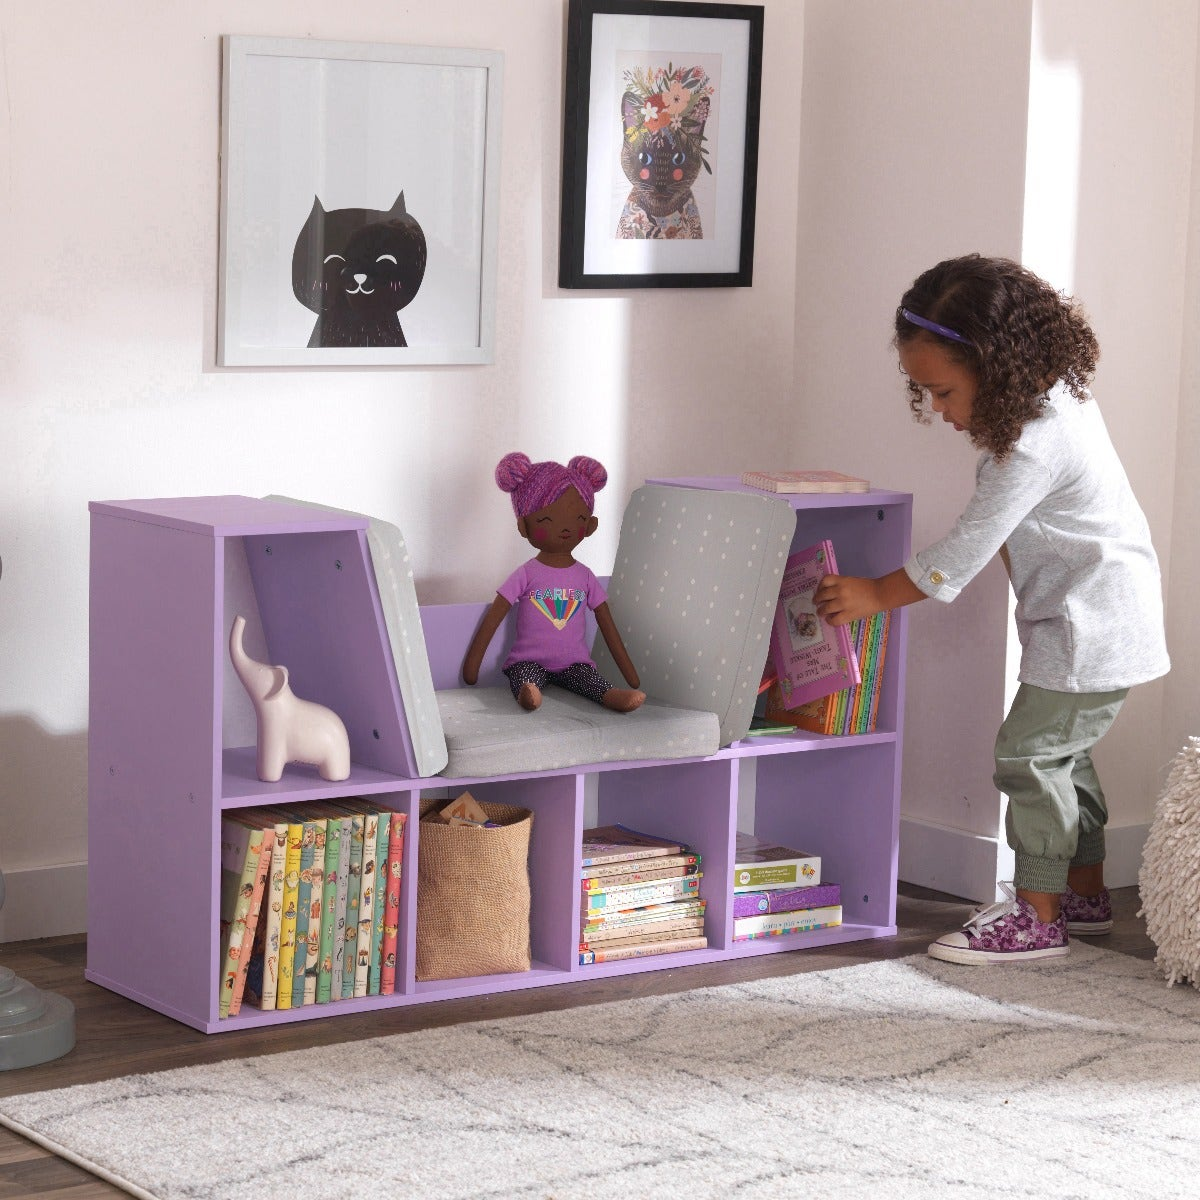 6 convenient storage spaces for books, toys and more